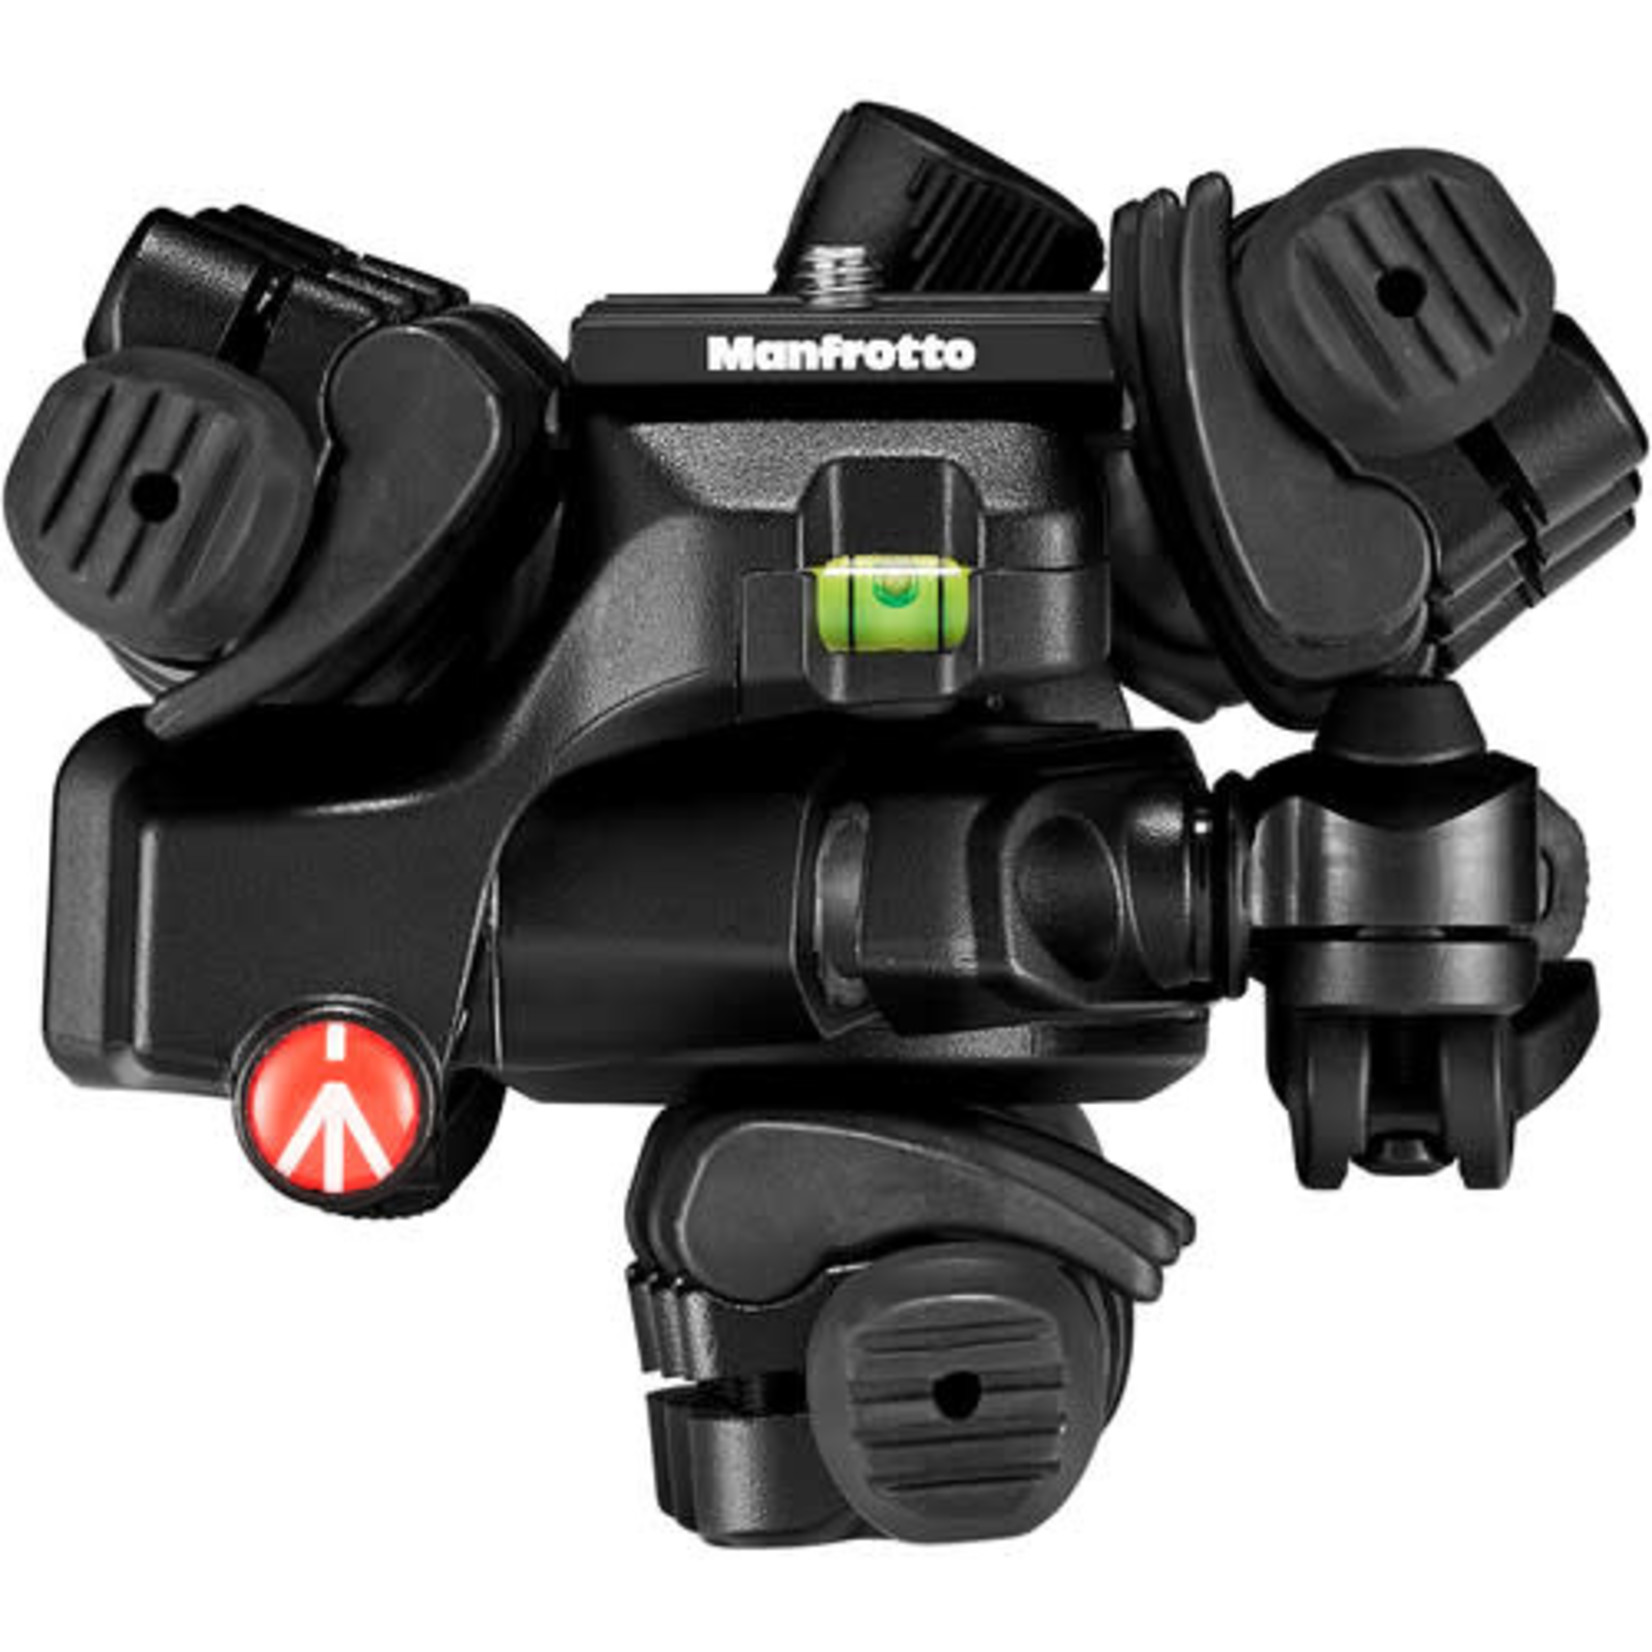 Manfrotto Manfrotto Befree 3-Way Live Advanced Tripod